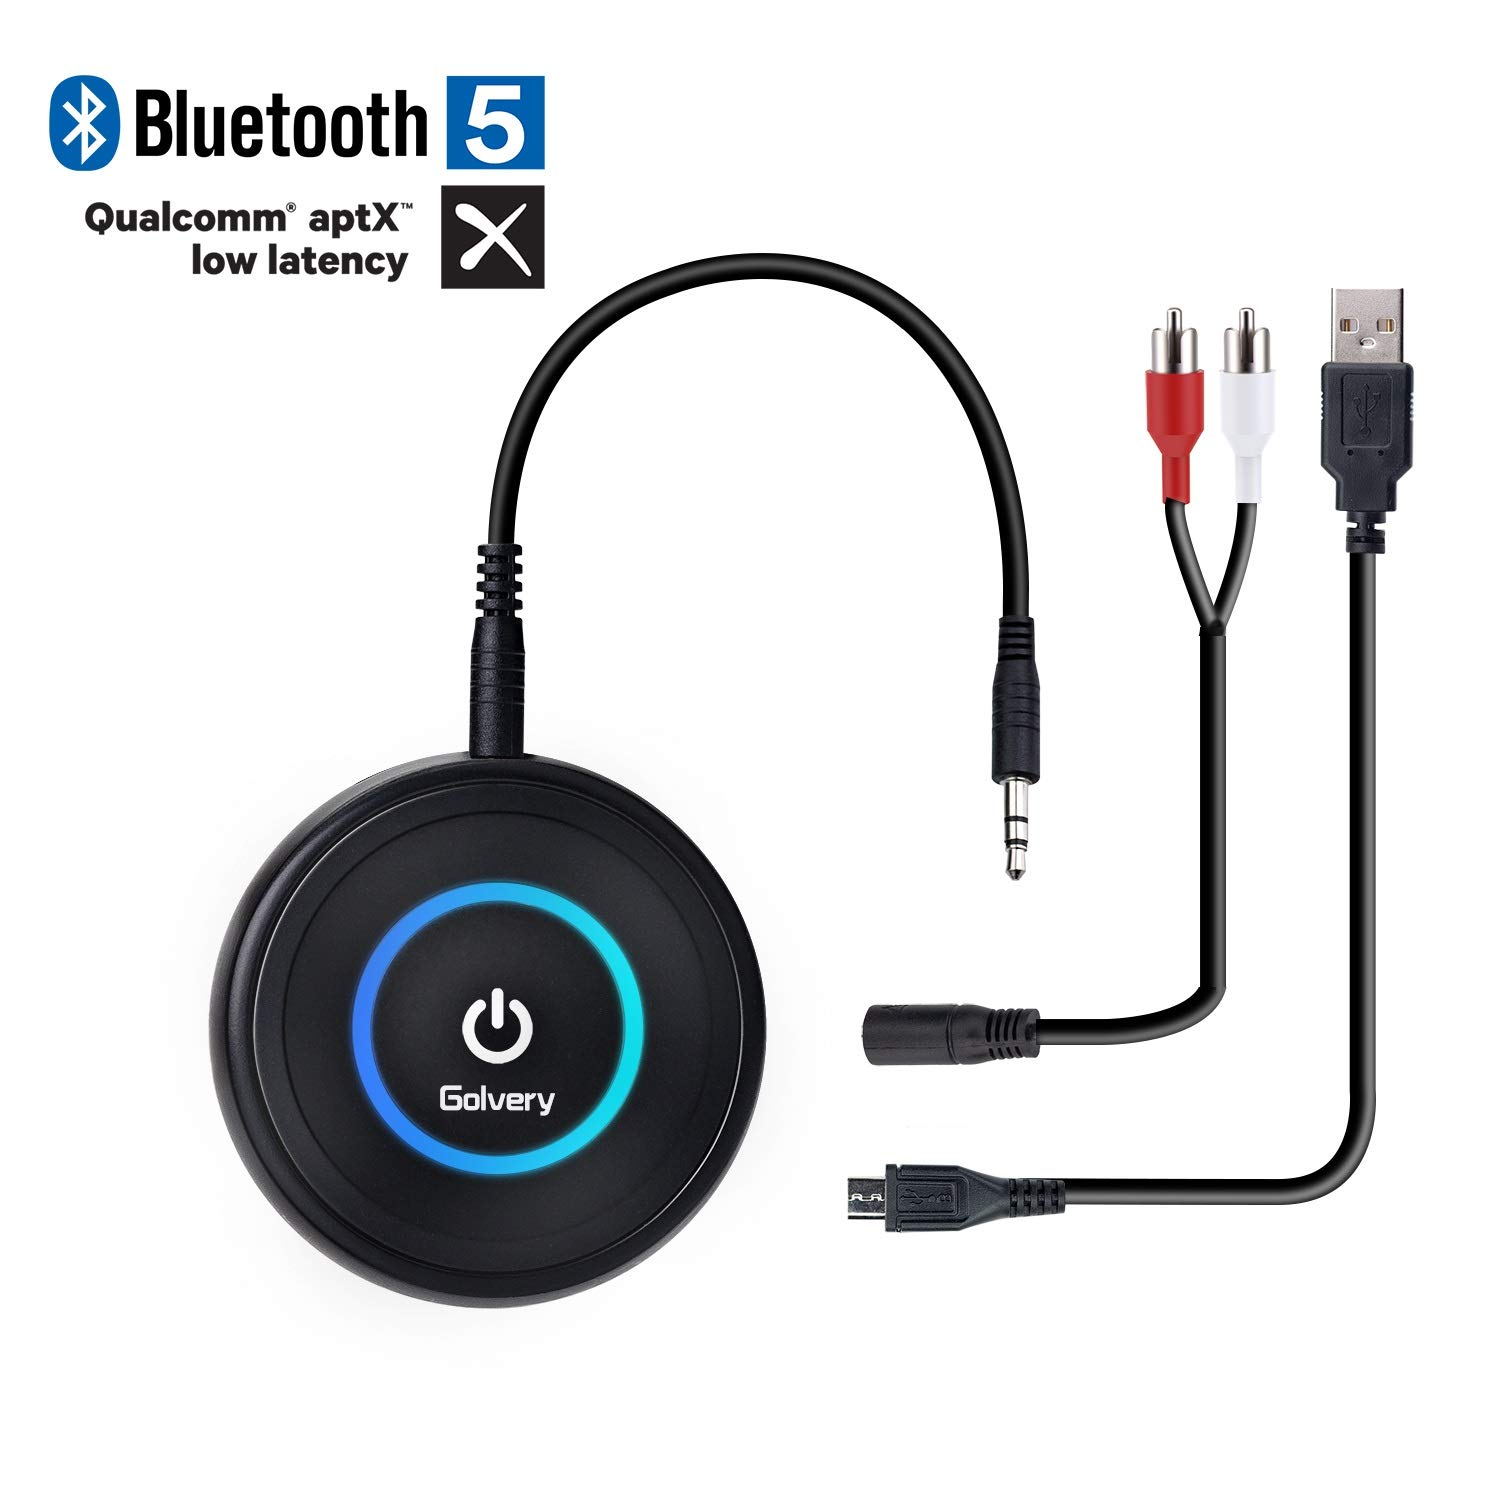 Golvery Bluetooth 5.0 Transmitter and Receiver - 2 in 1 Wireless 3.5mm Aux Bluetooth Audio Adapter - aptX Low Latency, Enjoy HiFi Music - for Home TV, PC, Headphones, Speakers & Car Stereo System by Golvery